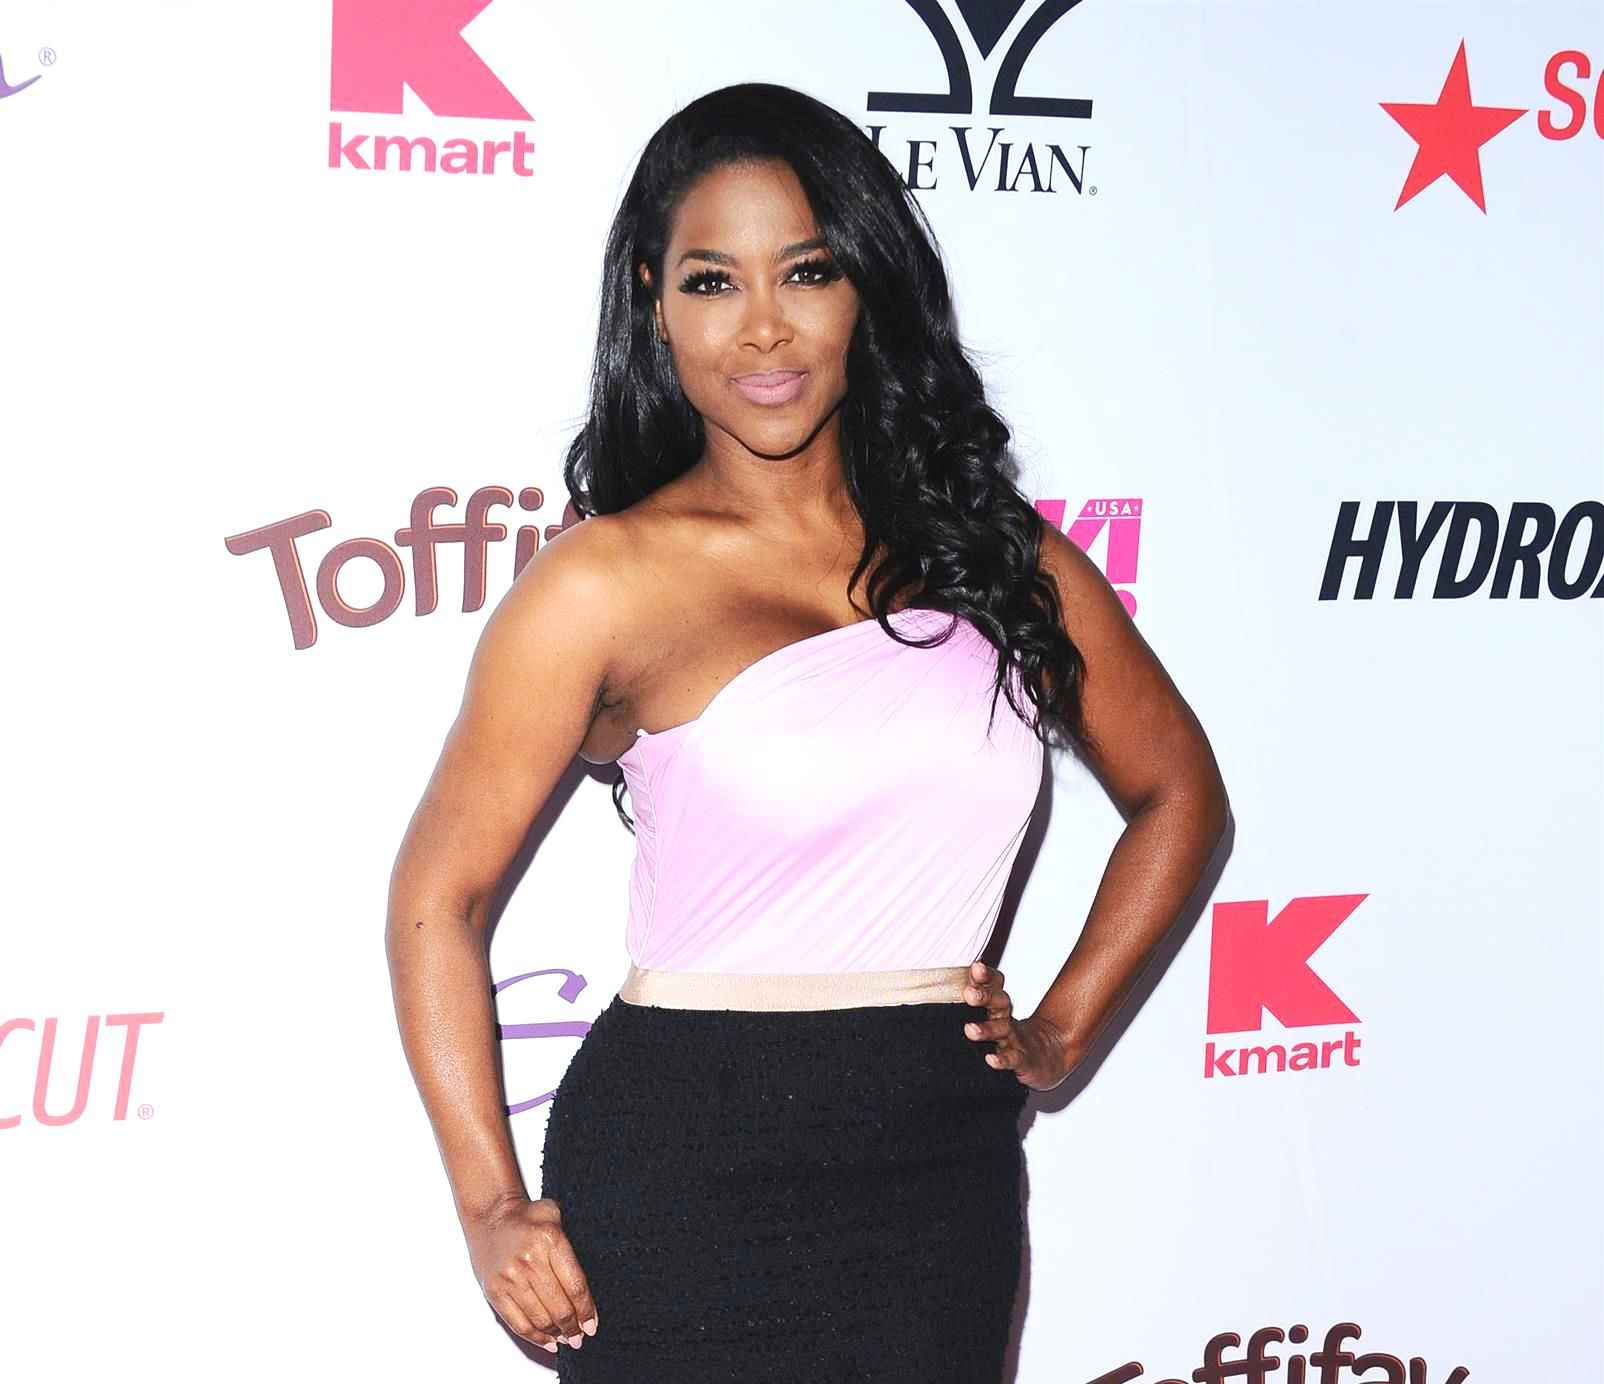 Kenya Moore's Pics Of Her Baby Girl, Brooklyn Daly Opening